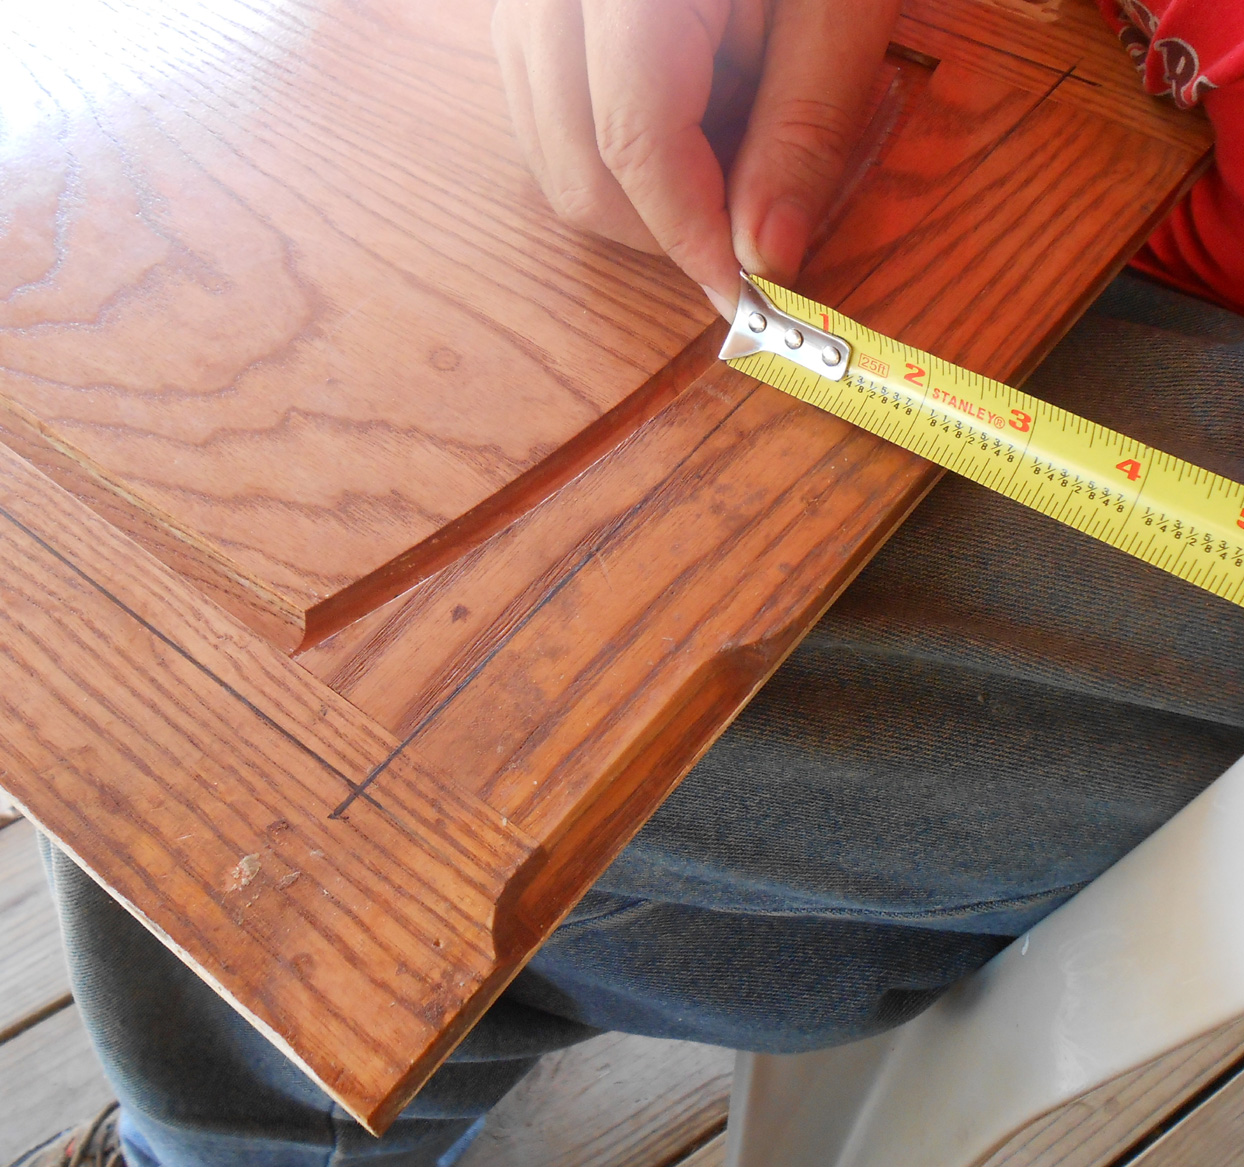 The Guide Board Is Measured At Both Ends To Match The Router Edge To . Full resolution  snapshot, nominally Width 1244 Height 1167 pixels, snapshot with #AB3820.